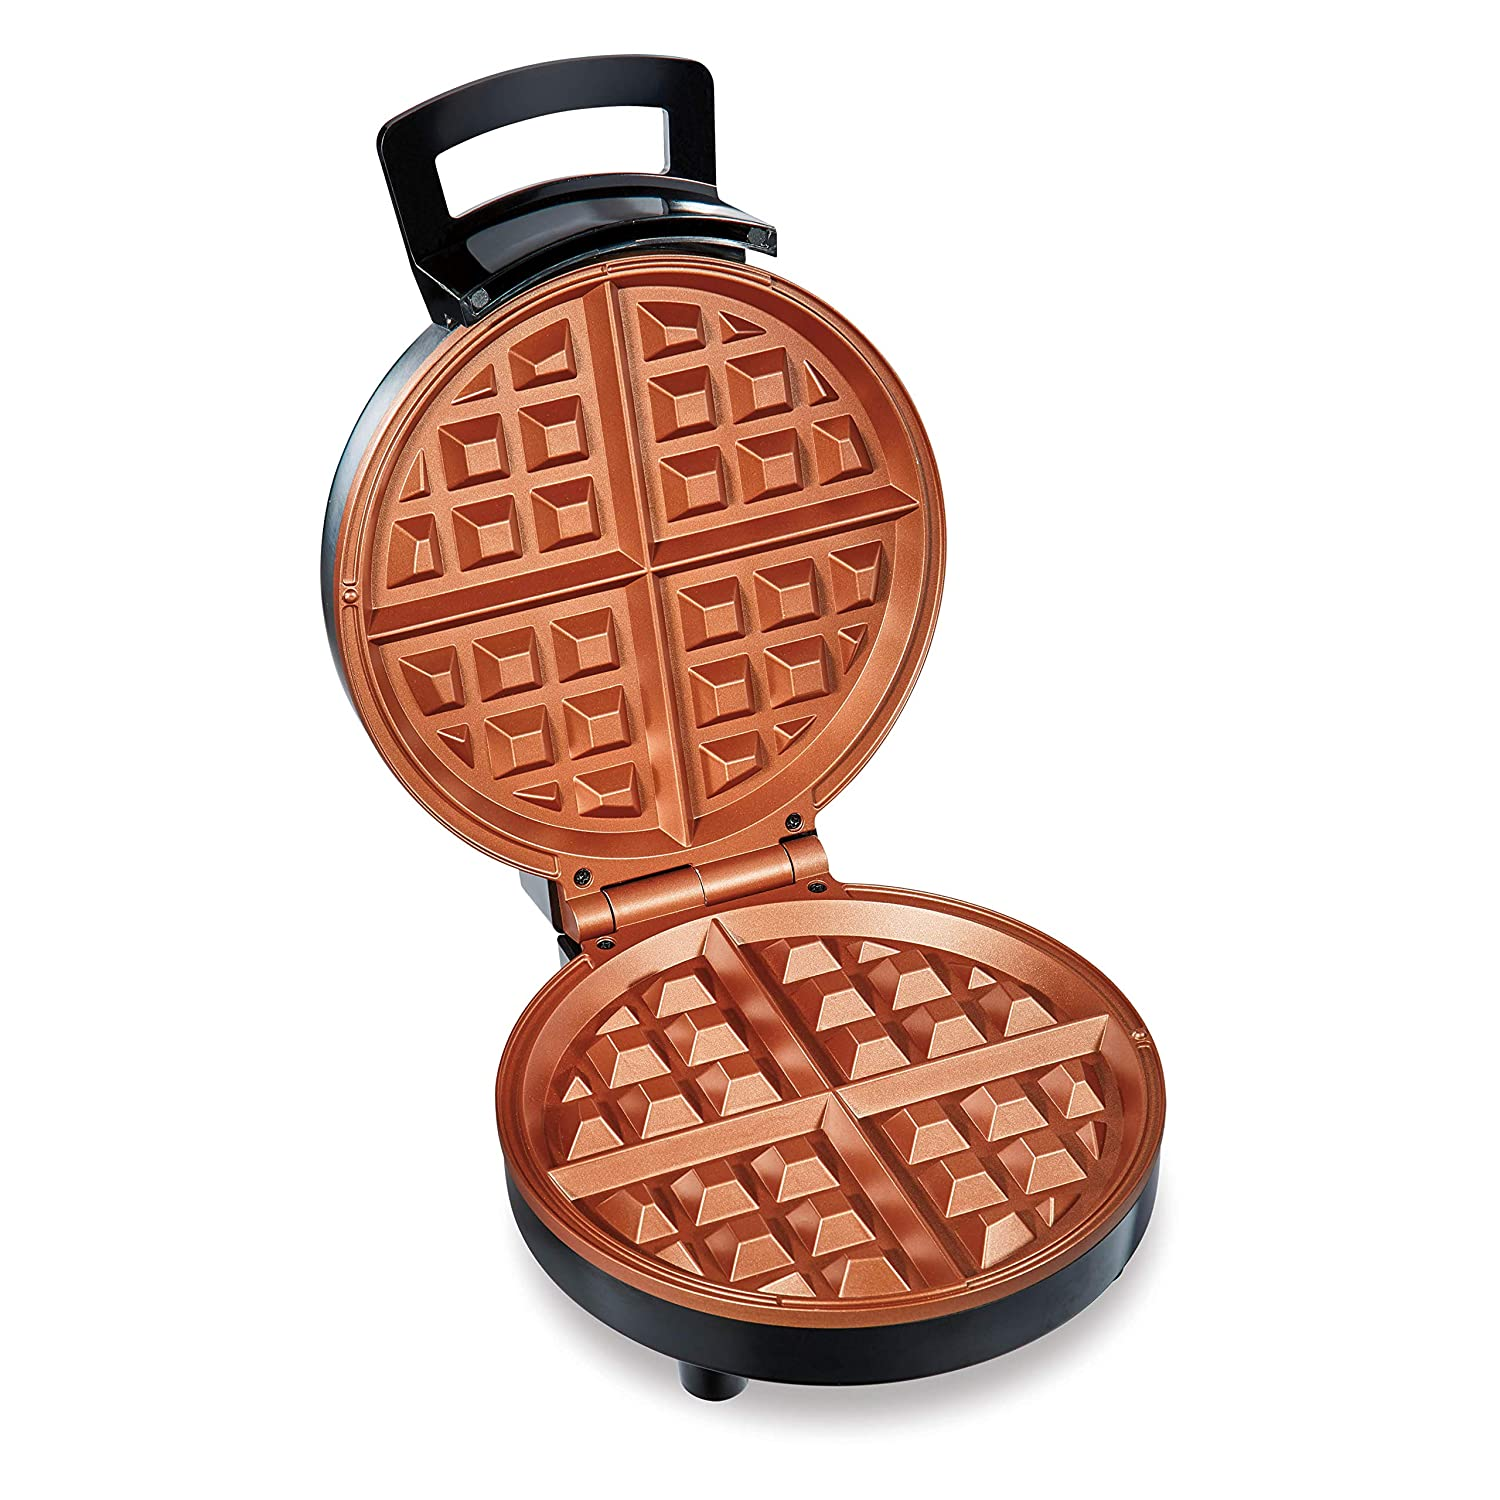 Hamilton Beach Belgian Waffle Maker with Non-Stick Copper Ceramic Plates, Browning Control, Indicator Lights, Stainless Steel 26081